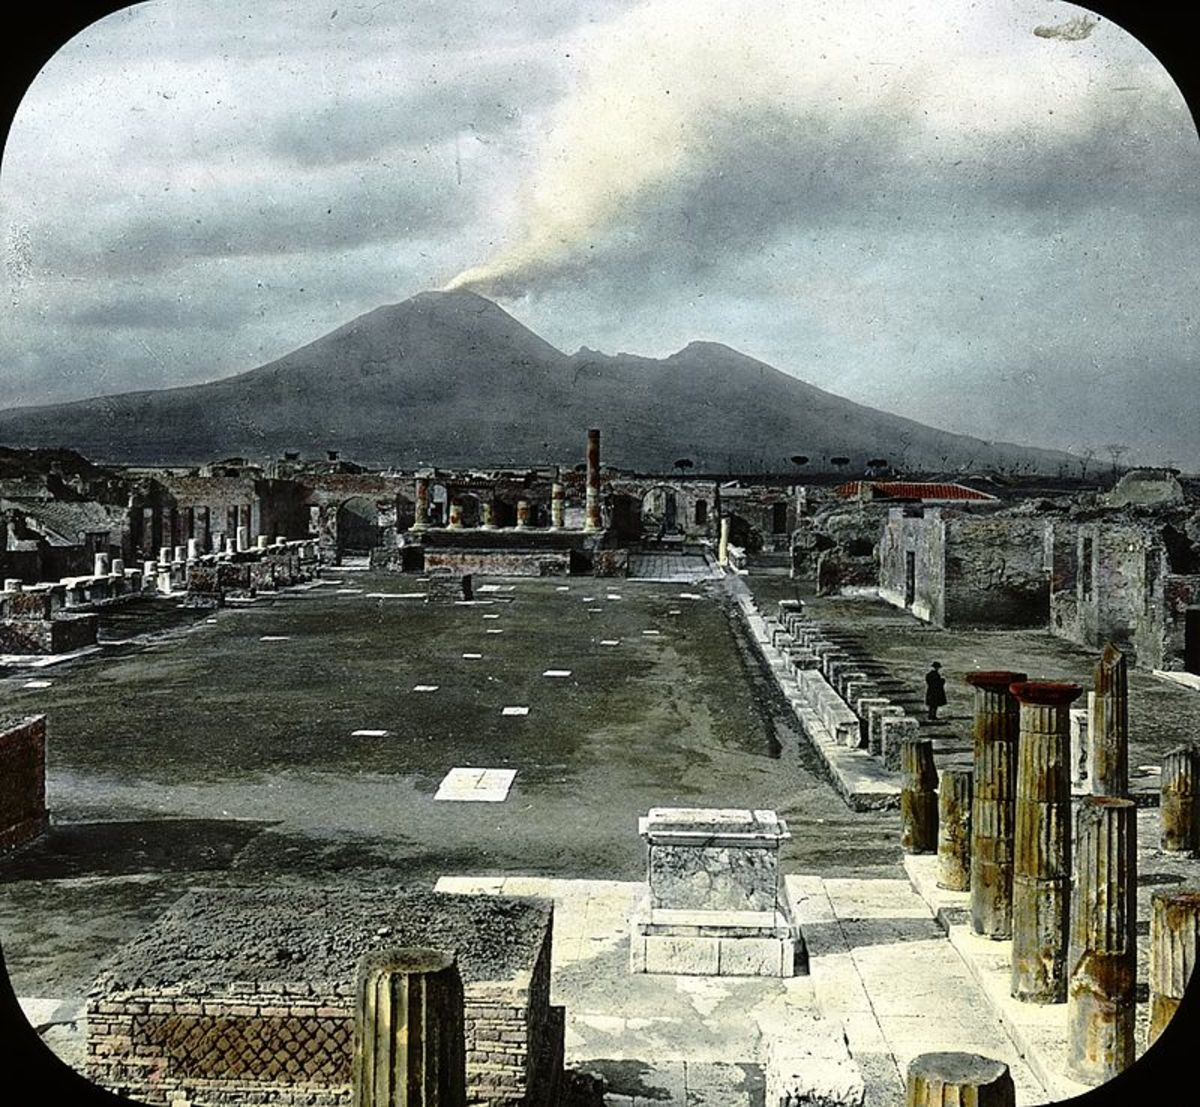 Pompeii with Mt. Vesuvius in the background